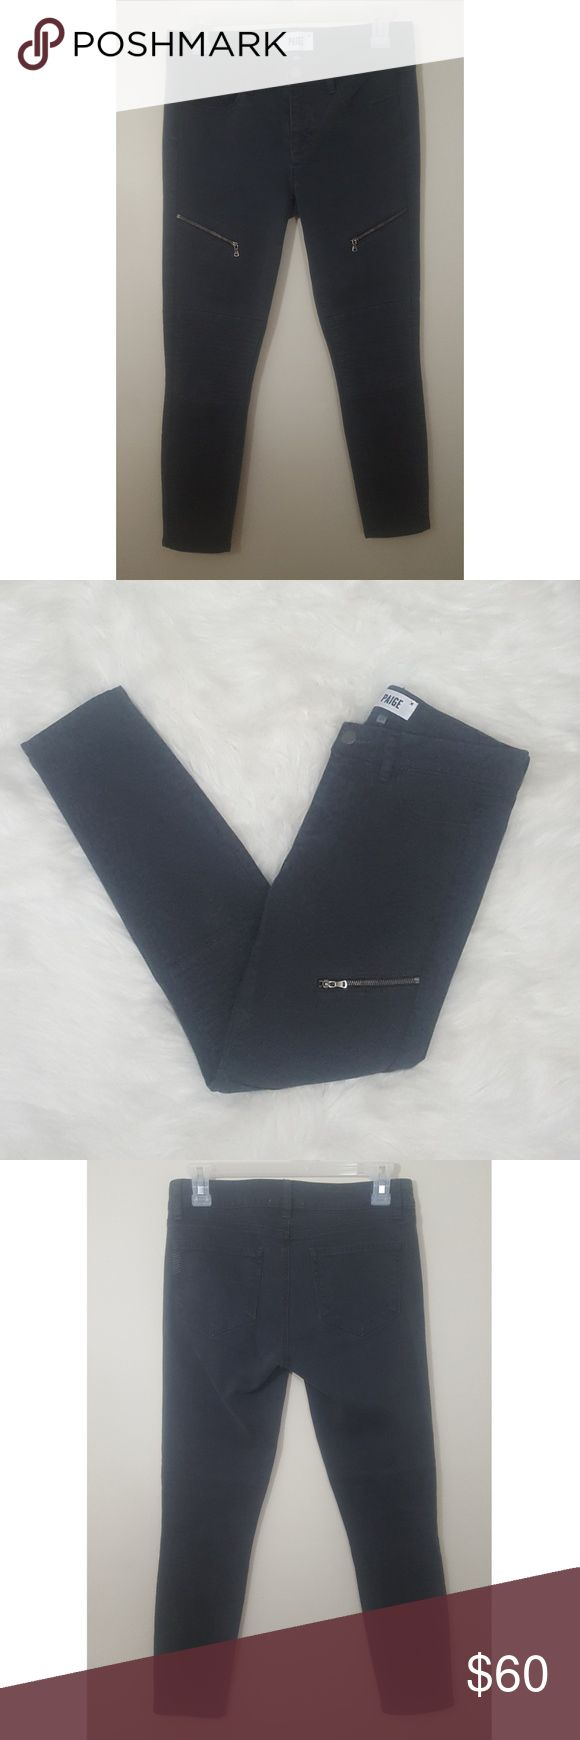 """Paige Zipper Skinny Jeans Paige brand. Charcoal gray color. Zipper on each leg. Skinny Jeans. Size 27.  Measurements are approximate and taken while laid flat:  Inseam: 26"""" Outseam: 34"""" Rise: 8.5"""" Leg Opening: 5"""" PAIGE Jeans Skinny"""